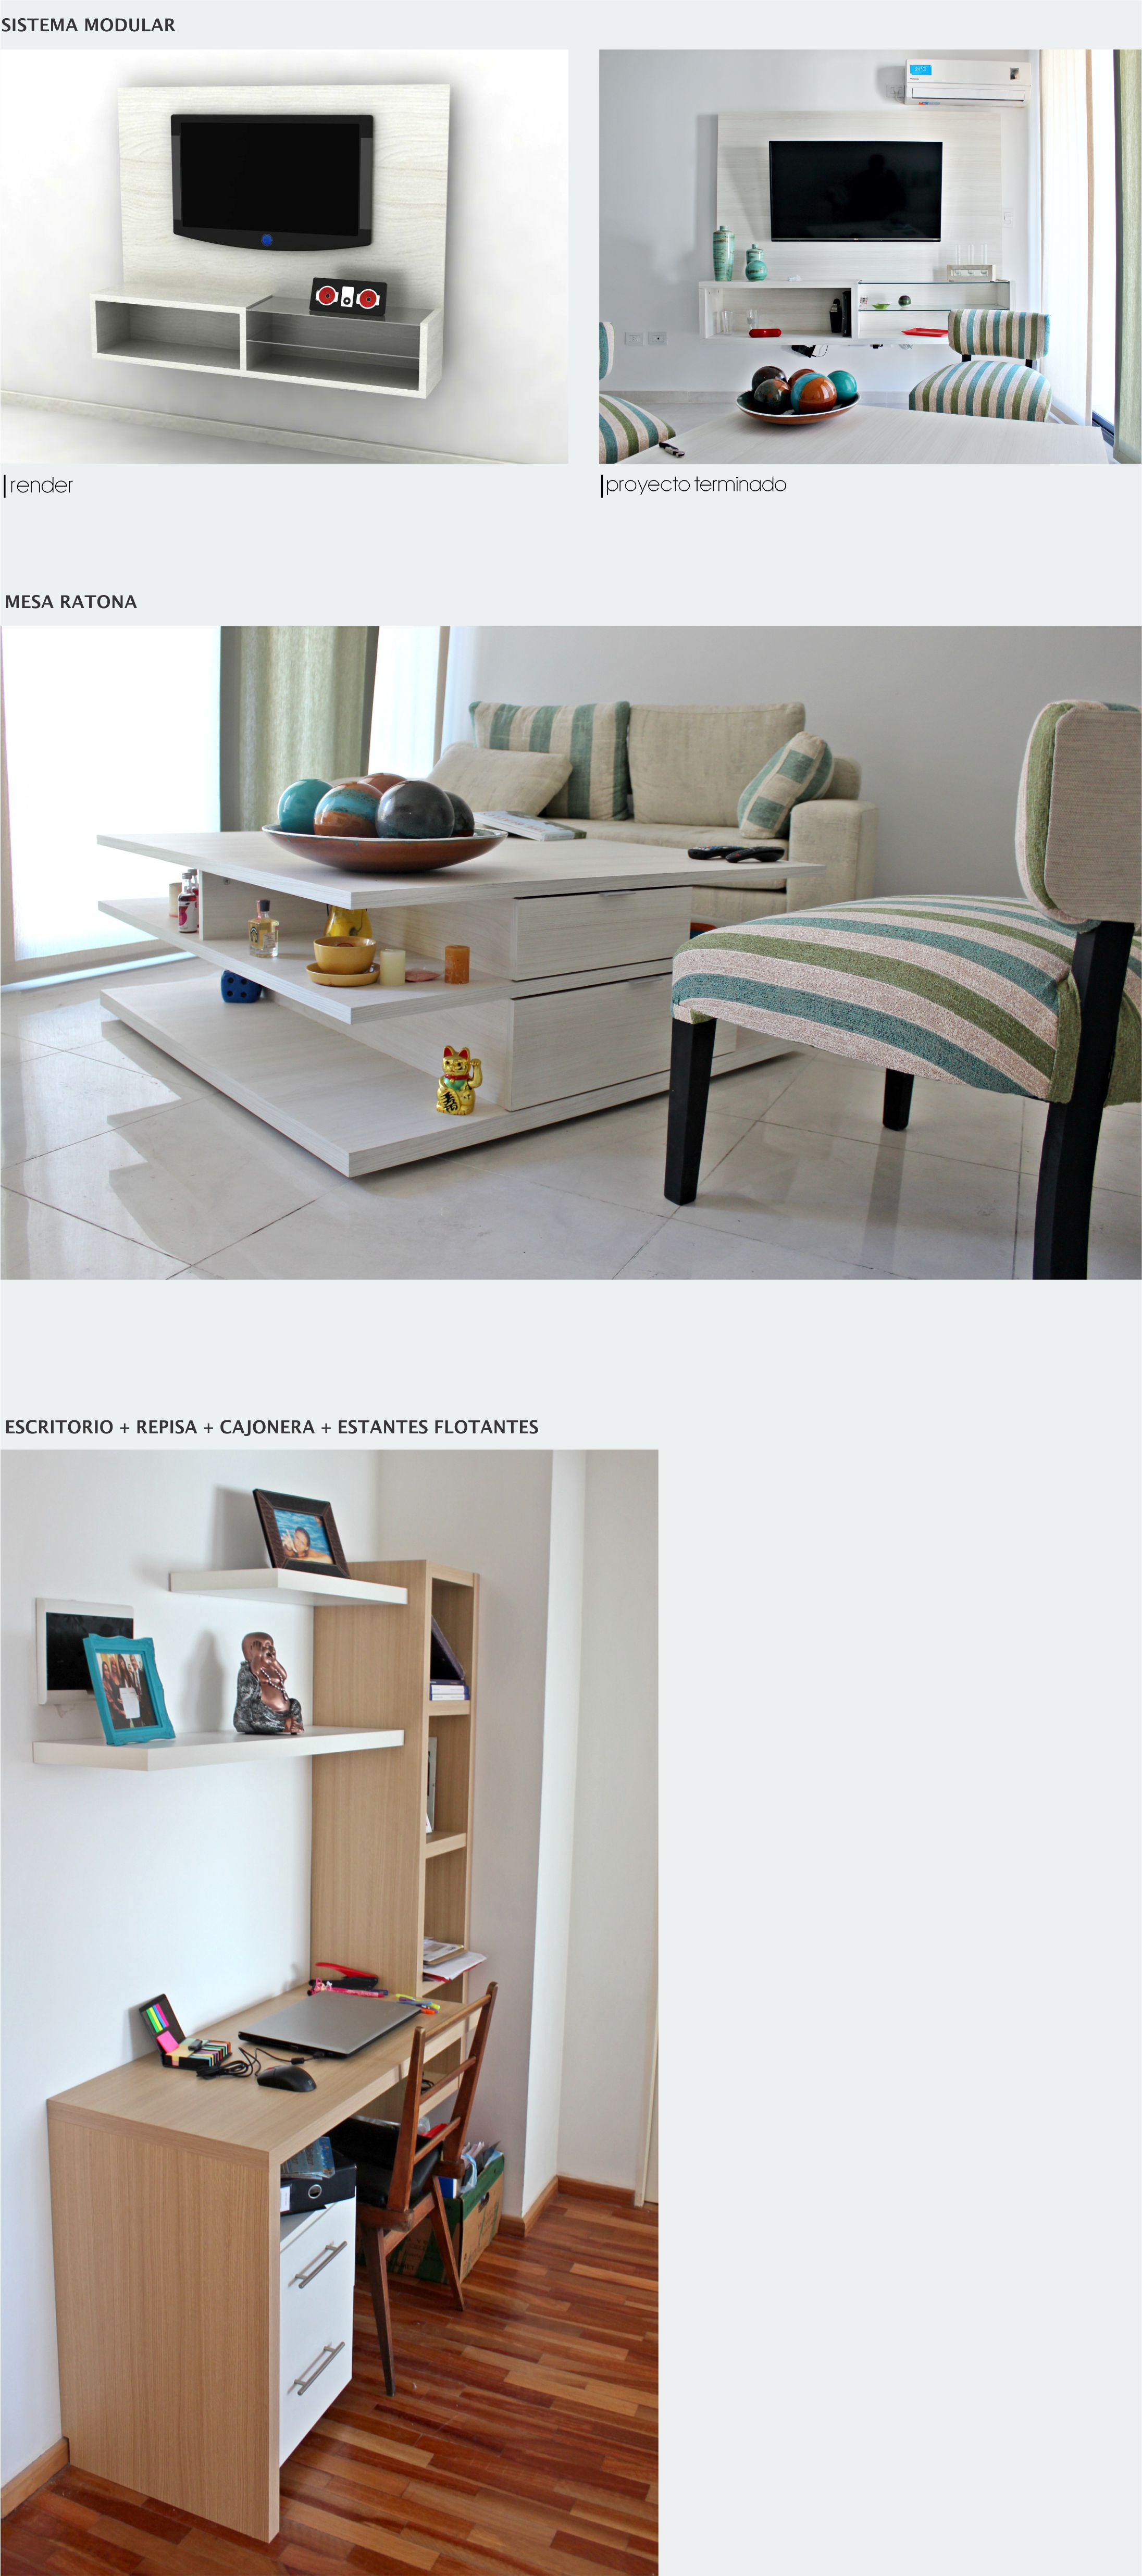 Mueble A Medida Online Muebles A Medida Online Great Online Muebles Closed Home